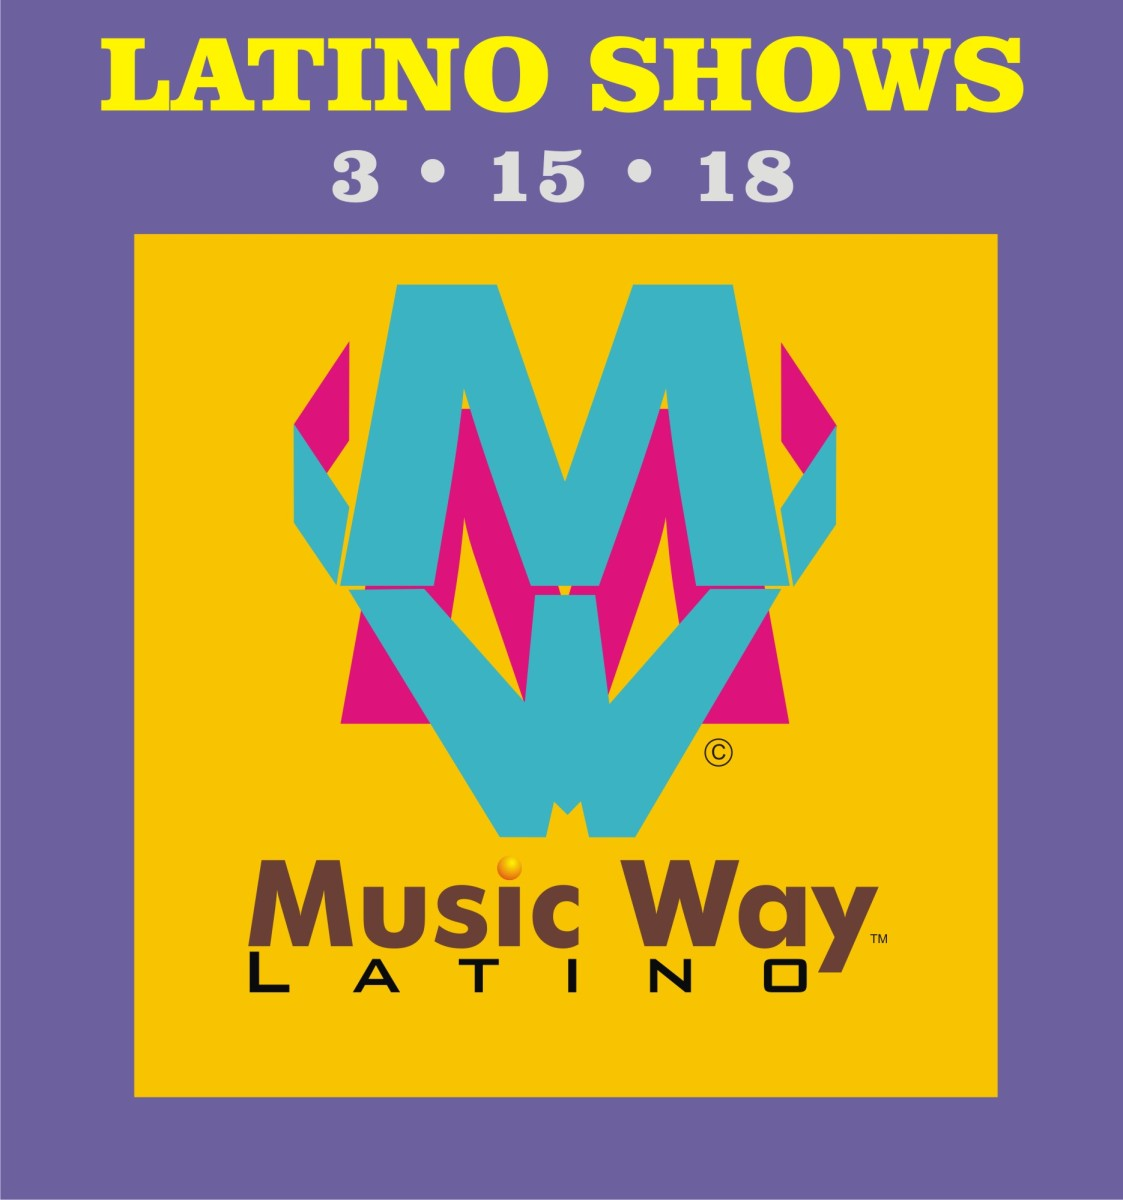 SXSW - Thursday 15 ► Latino Shows